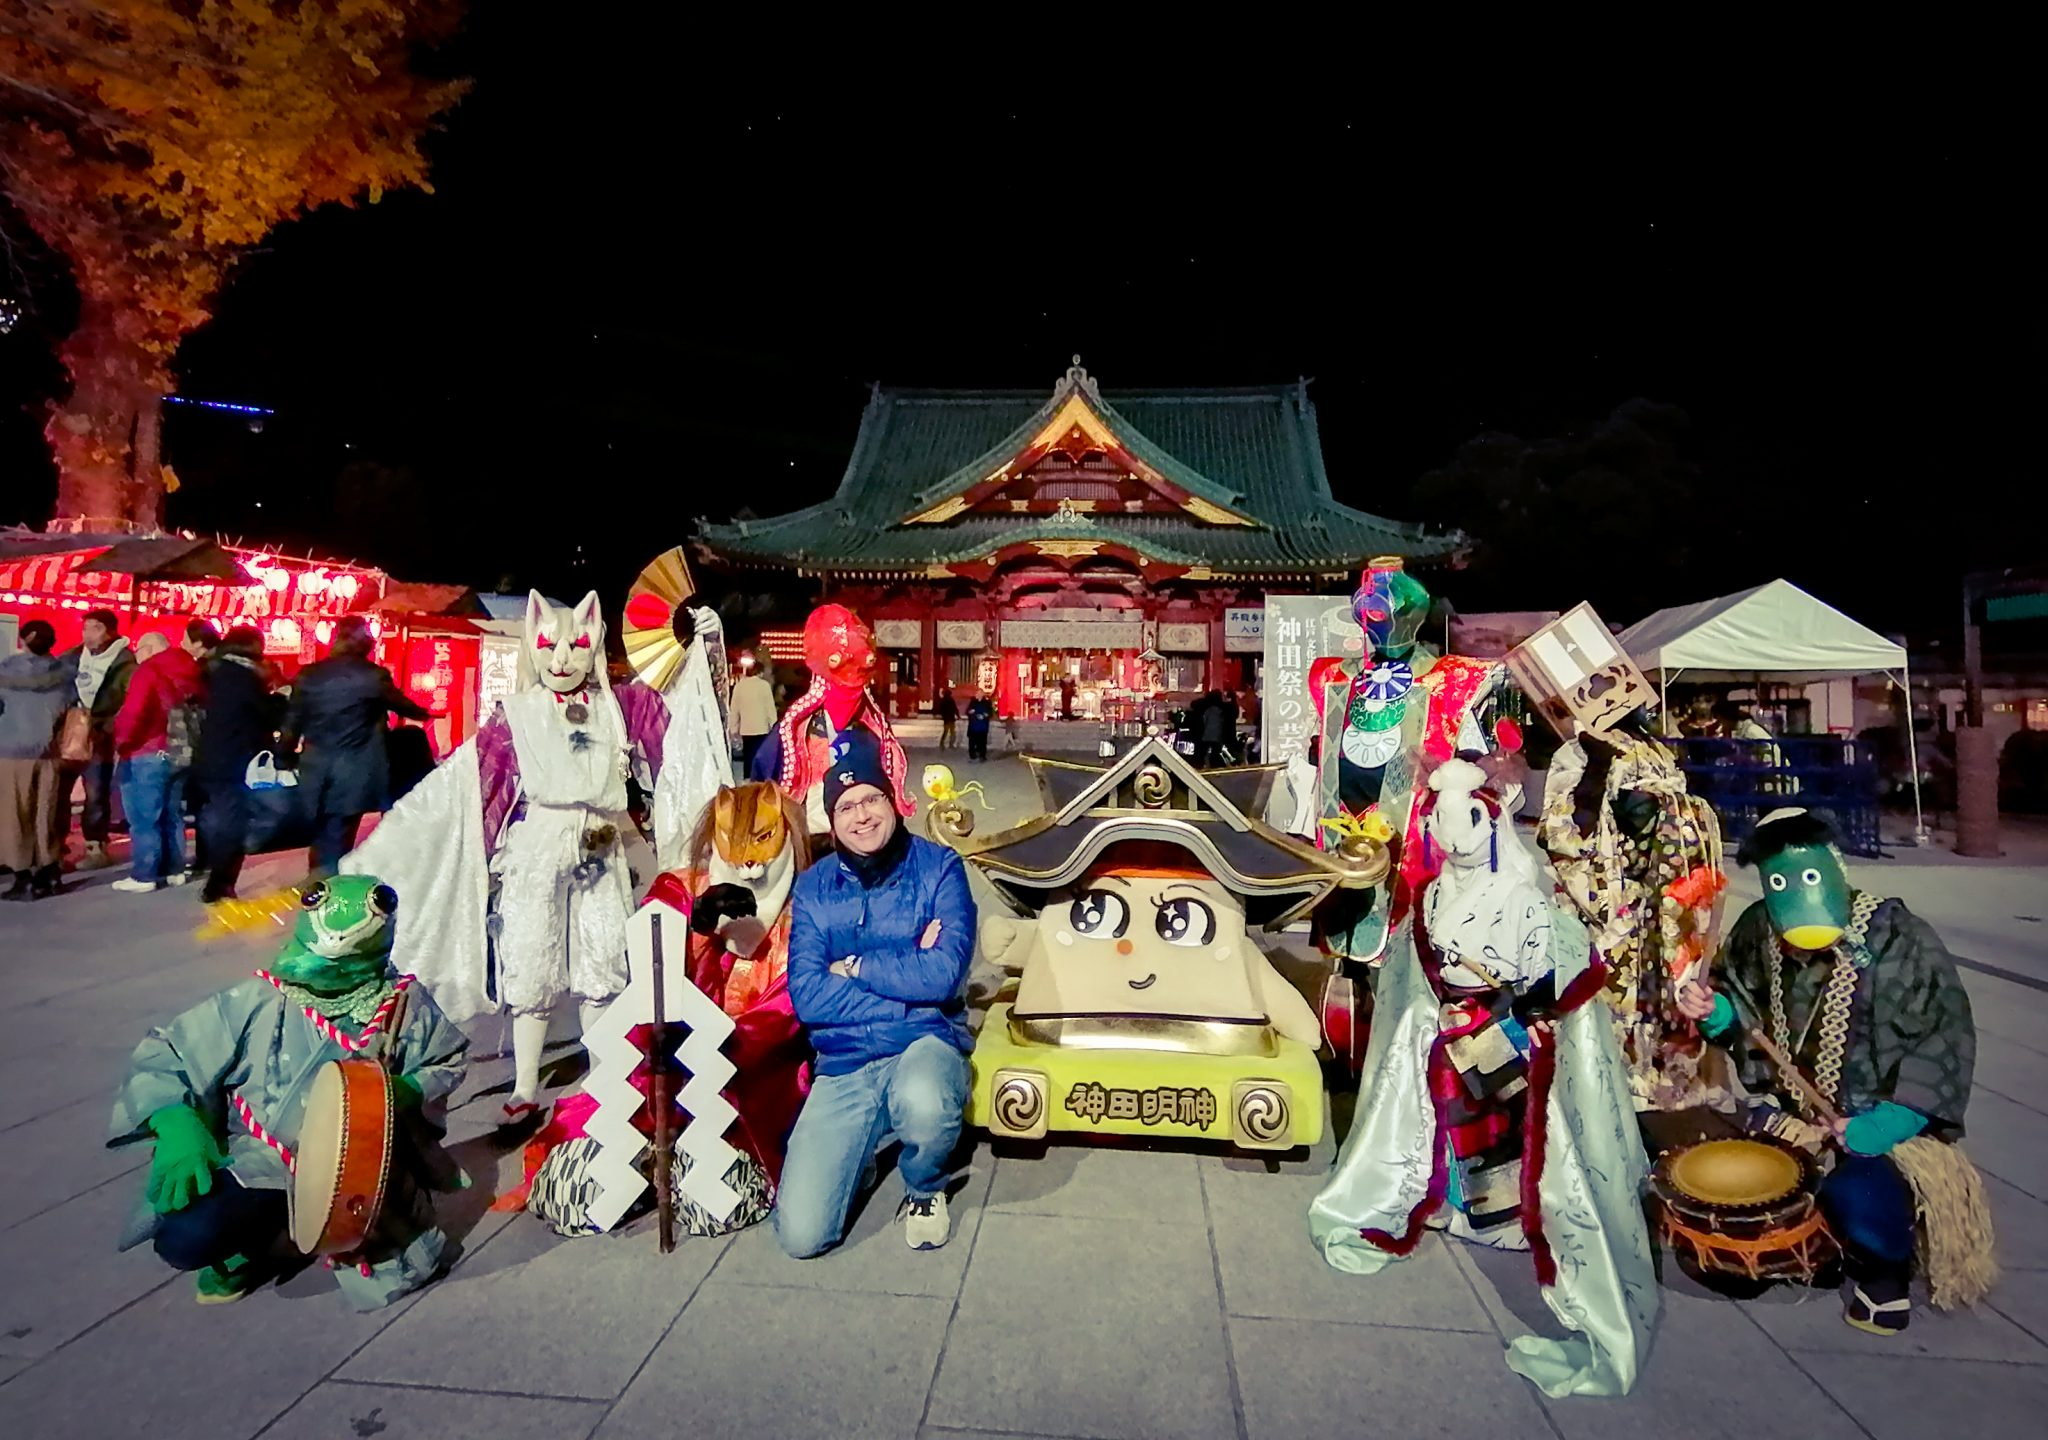 Mac, Founder and Lead Guide of Maction Planet, and mascots, ghosts at Kanda Myojin Edo Night Market